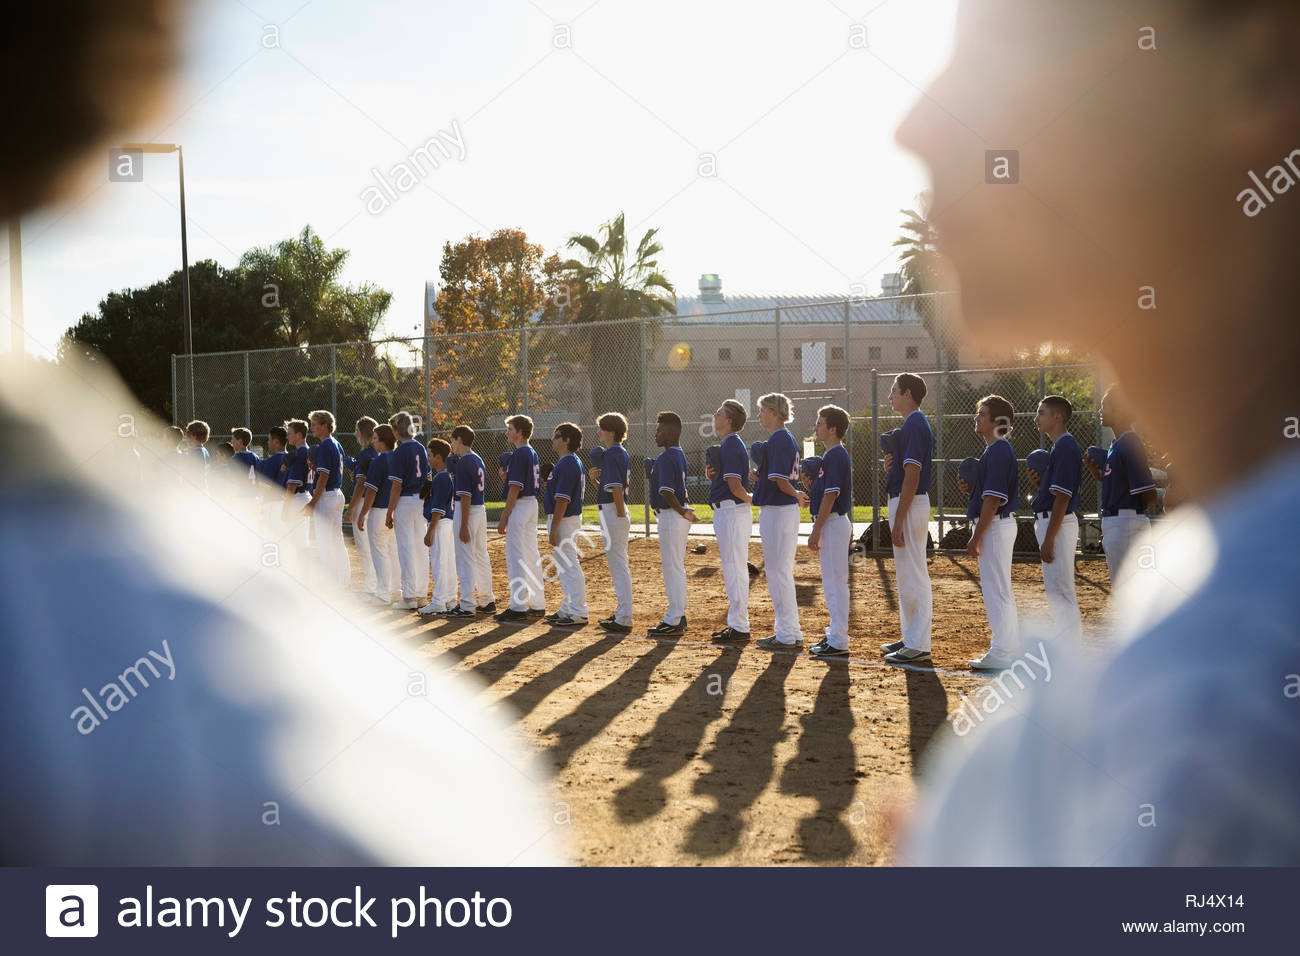 Baseball players standing in a row for national anthem - Stock Image